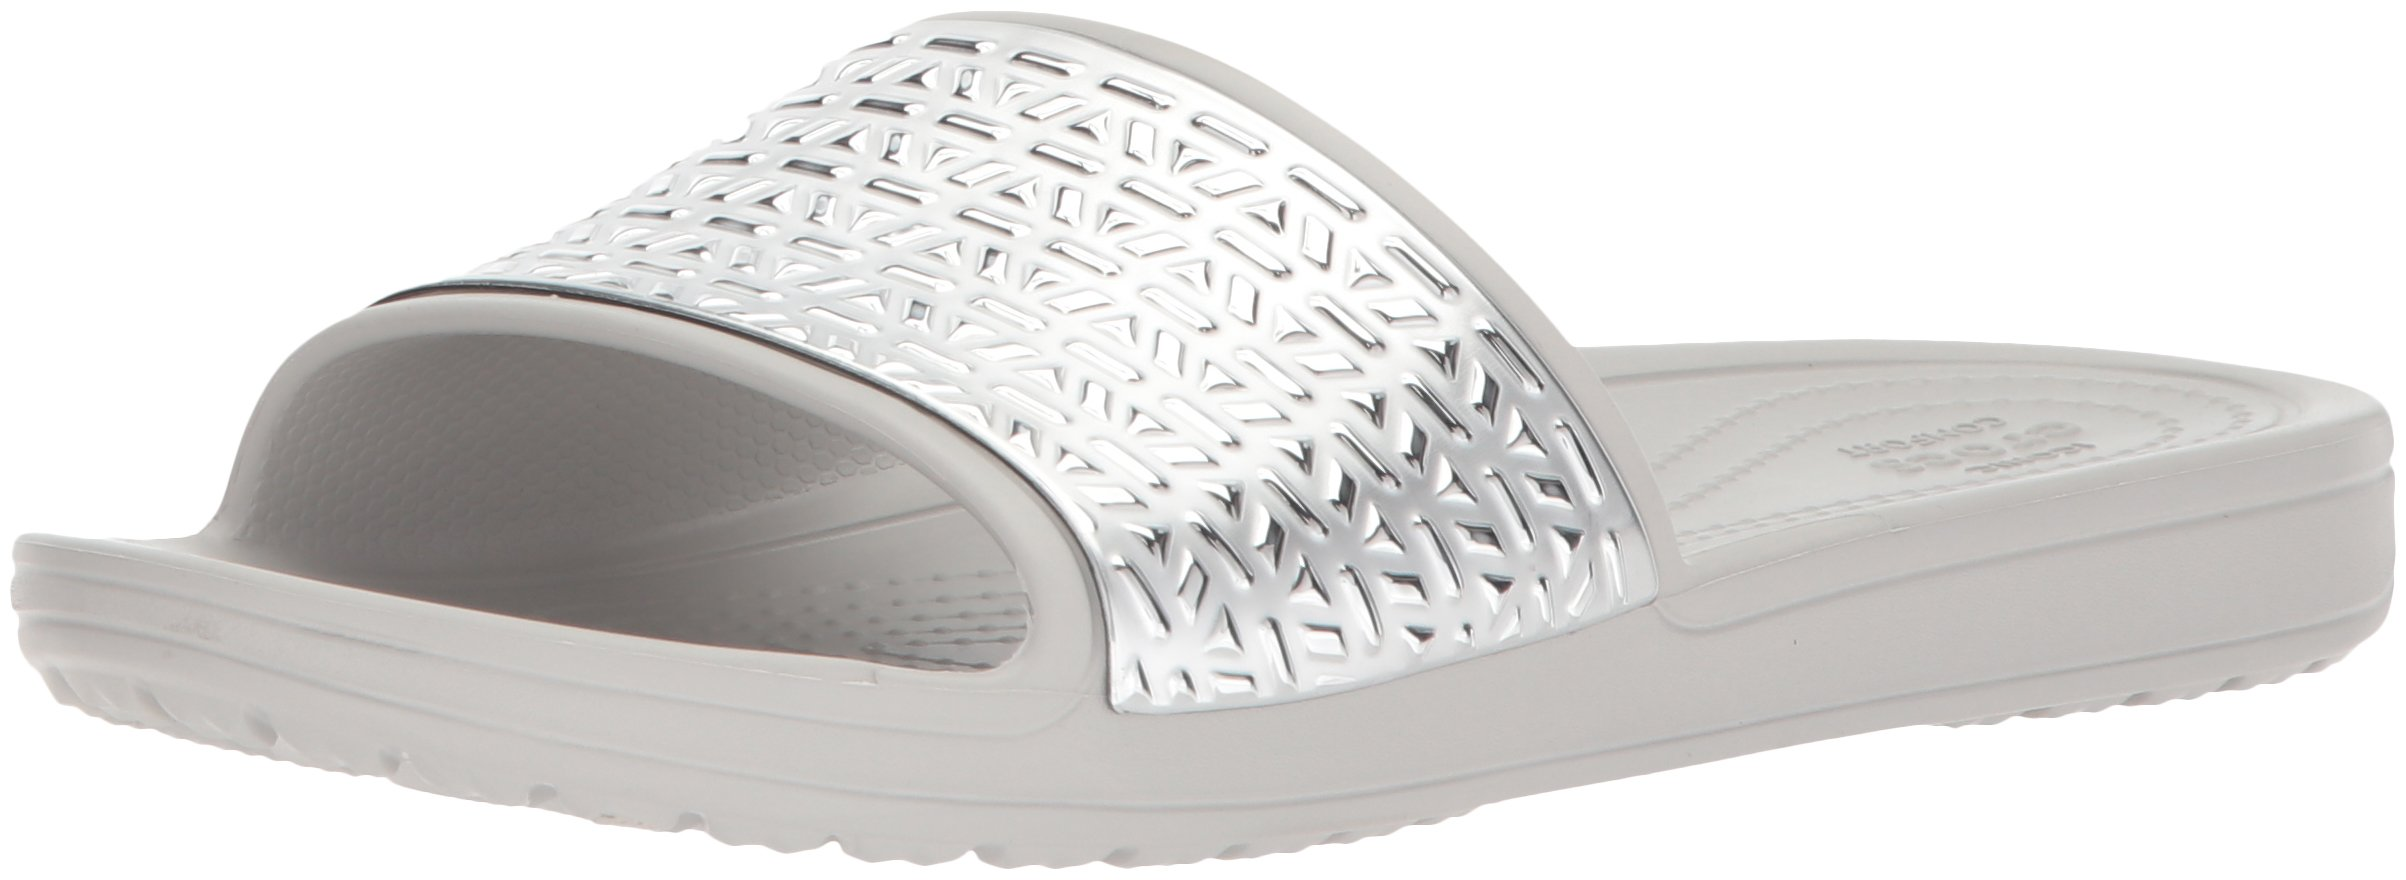 Crocs Women's Sloane Graphic Etched W Slide Sandal, Pearl White/Silver, 7 M US